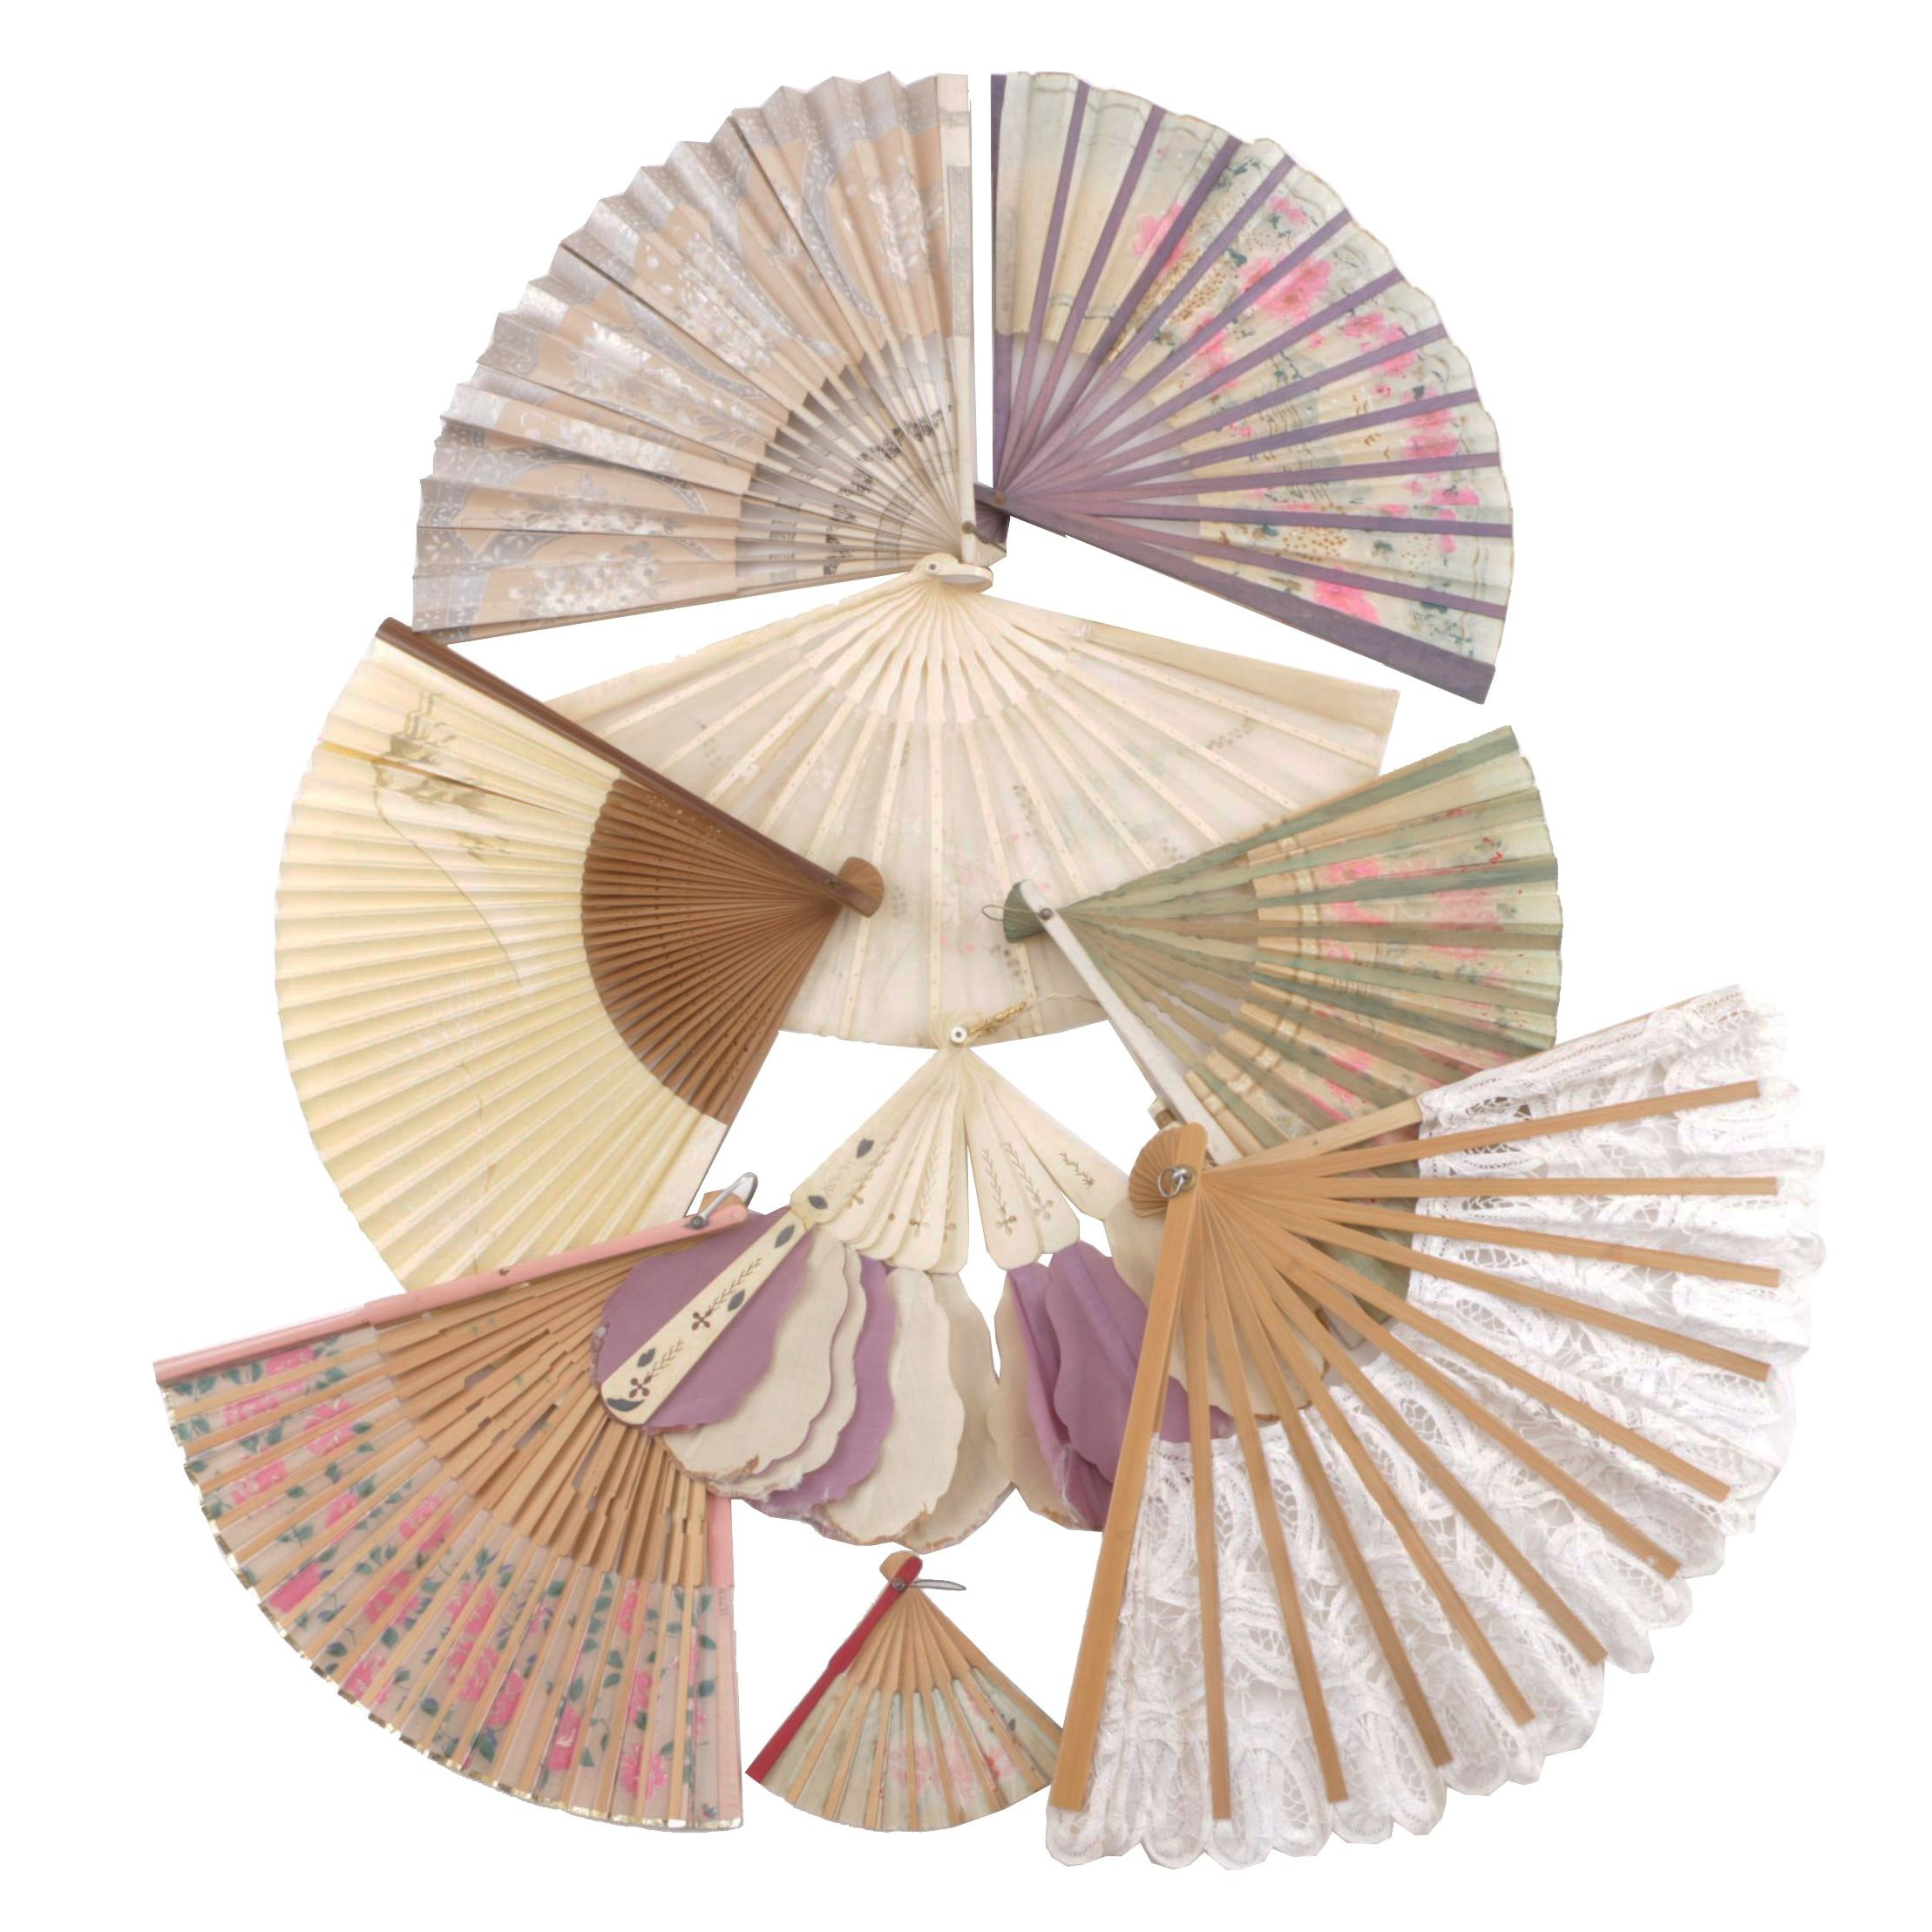 Vintage Folding Fans Including Wood, Lace and Bone